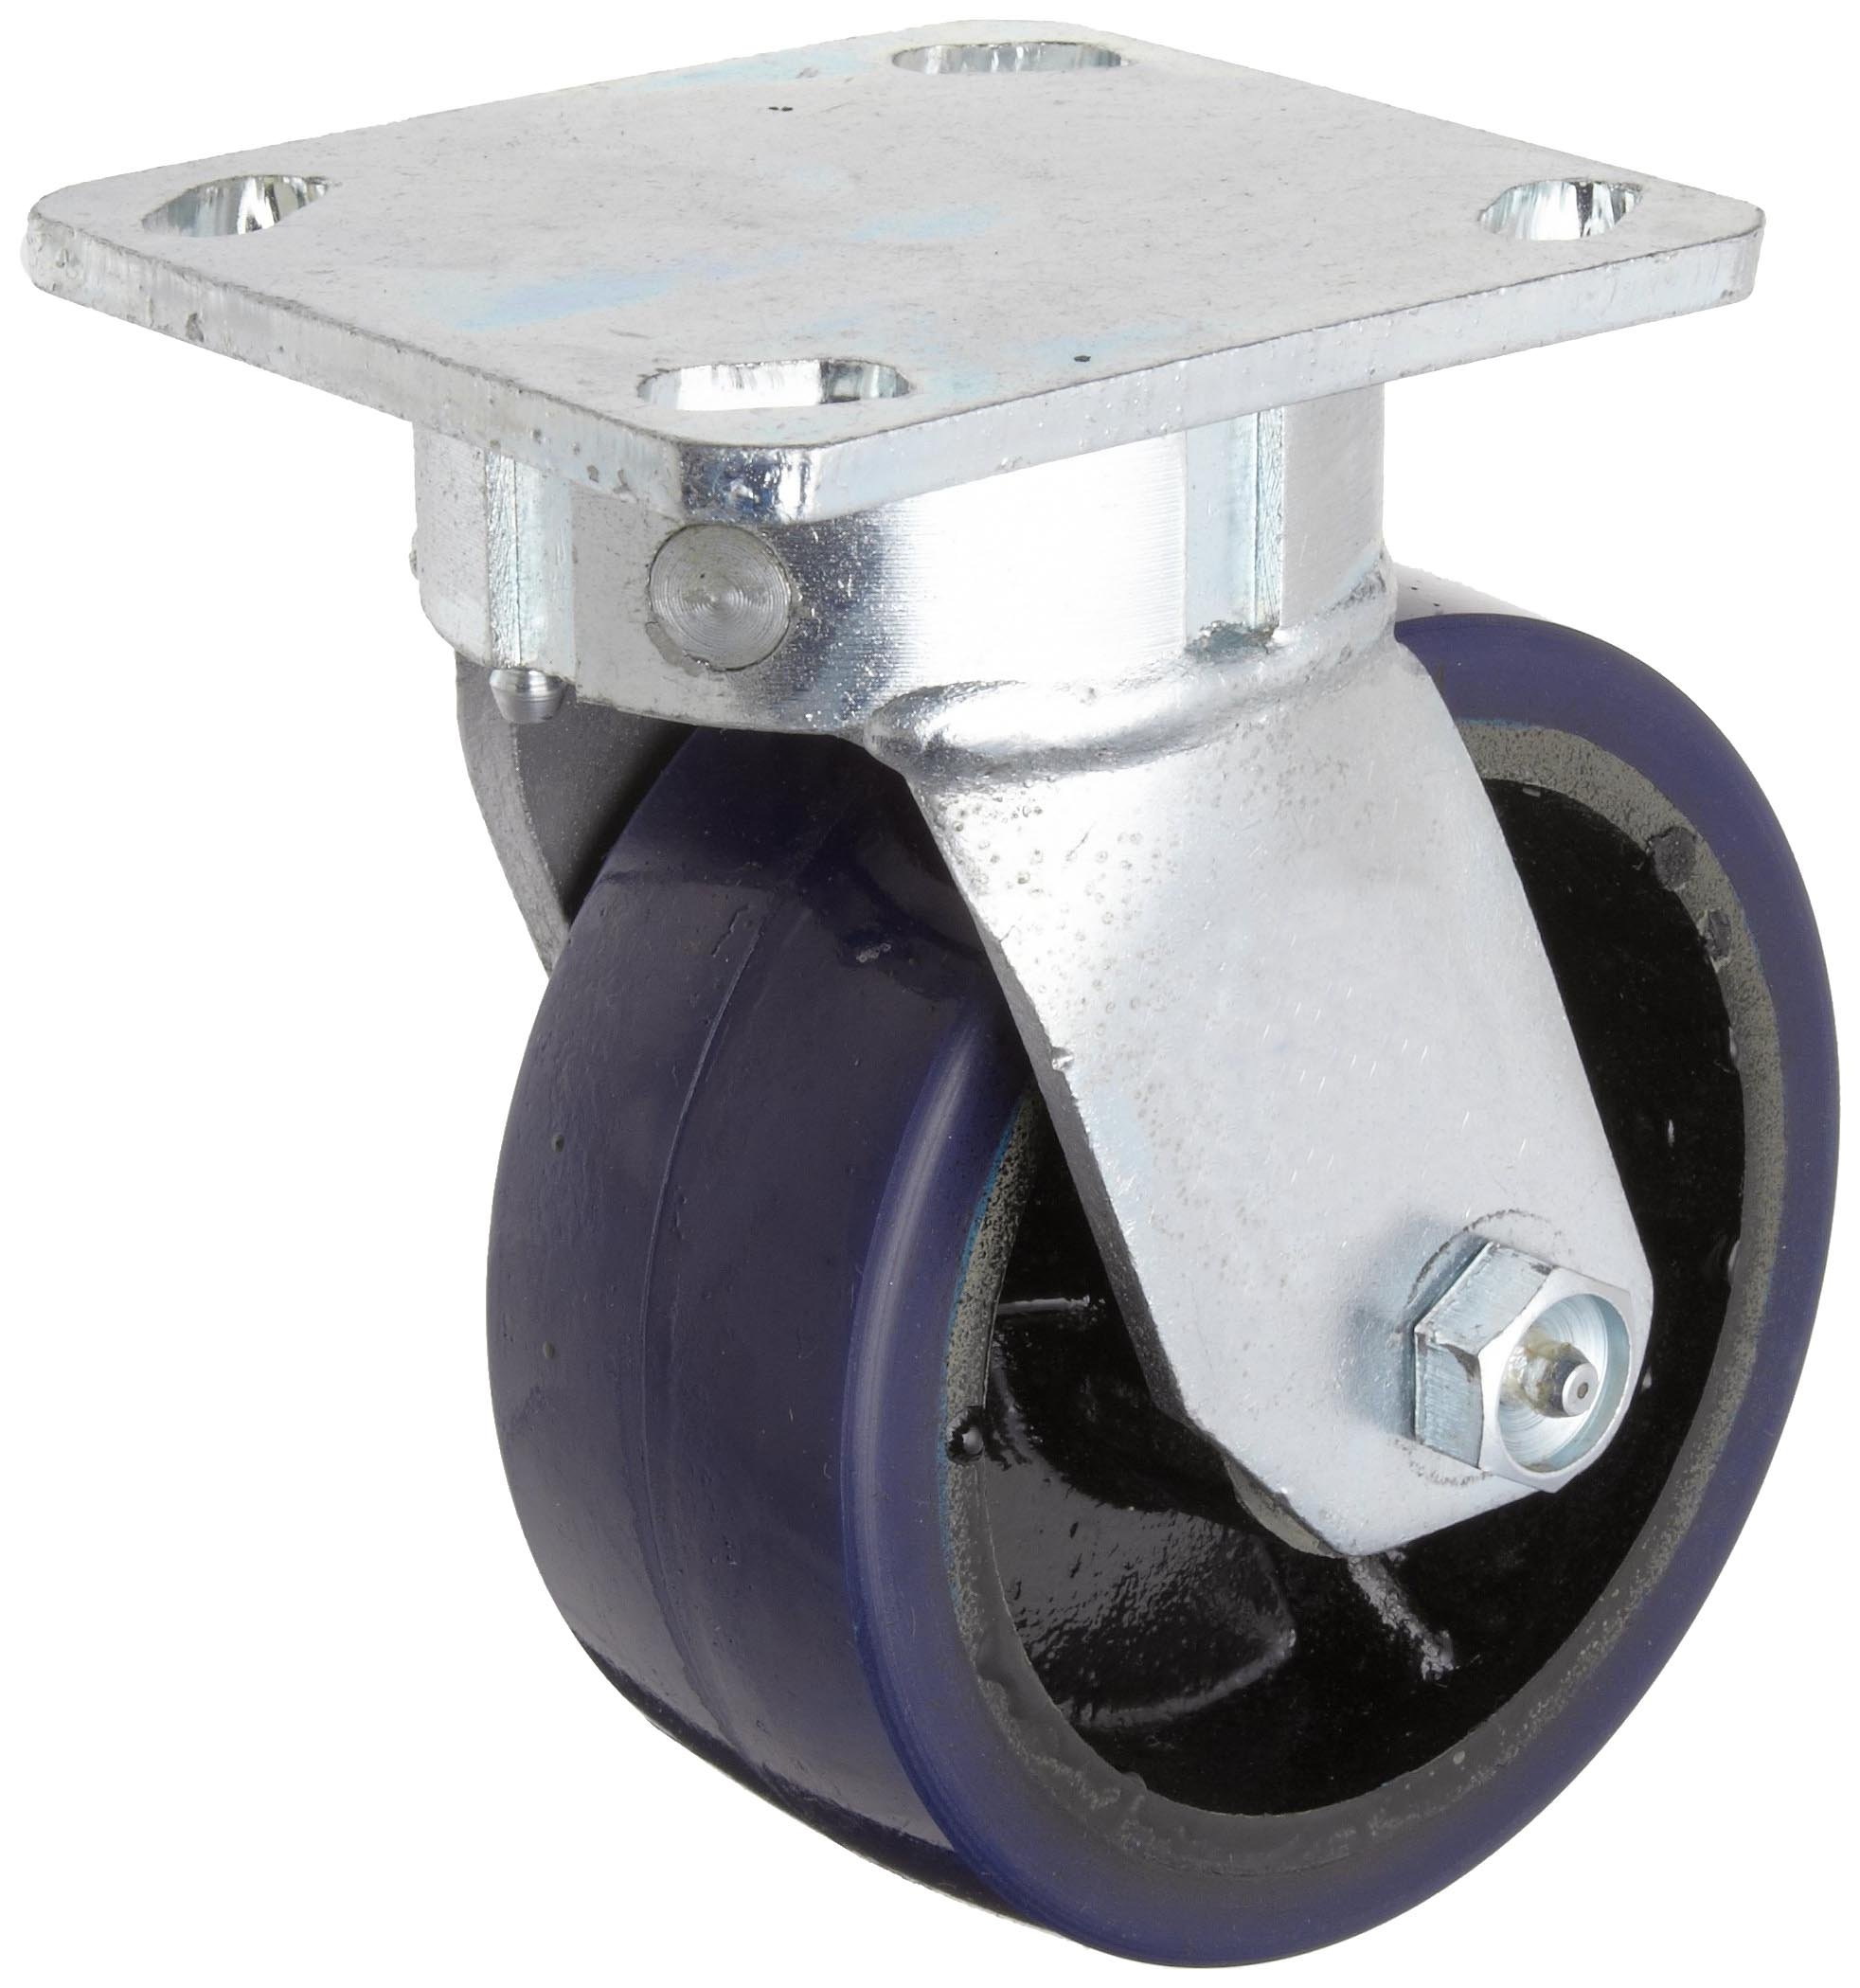 RWM Casters Freedom 48 Series Plate Caster, Swivel, Urethane on Aluminum Wheel, Roller Bearing, 1050 lbs Capacity, 5'' Wheel Dia, 2'' Wheel Width, 6-1/2'' Mount Height, 4-1/2'' Plate Length, 4'' Plate Width